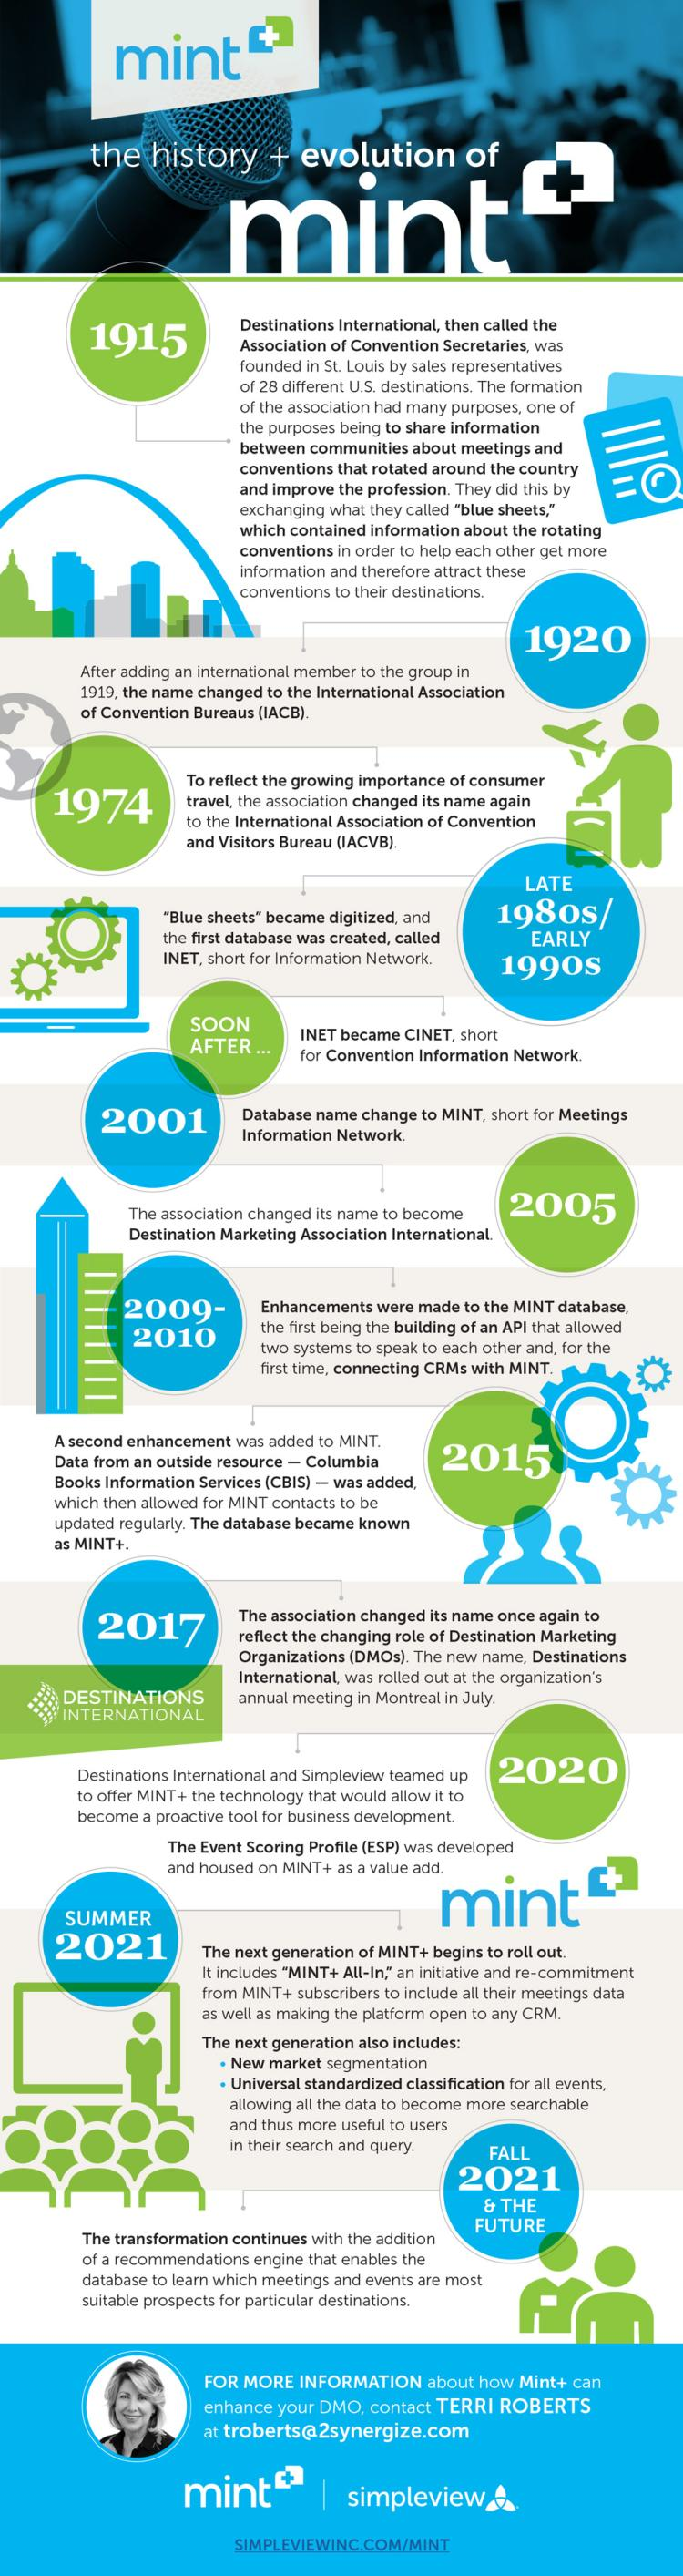 History of MINT+ Infographic